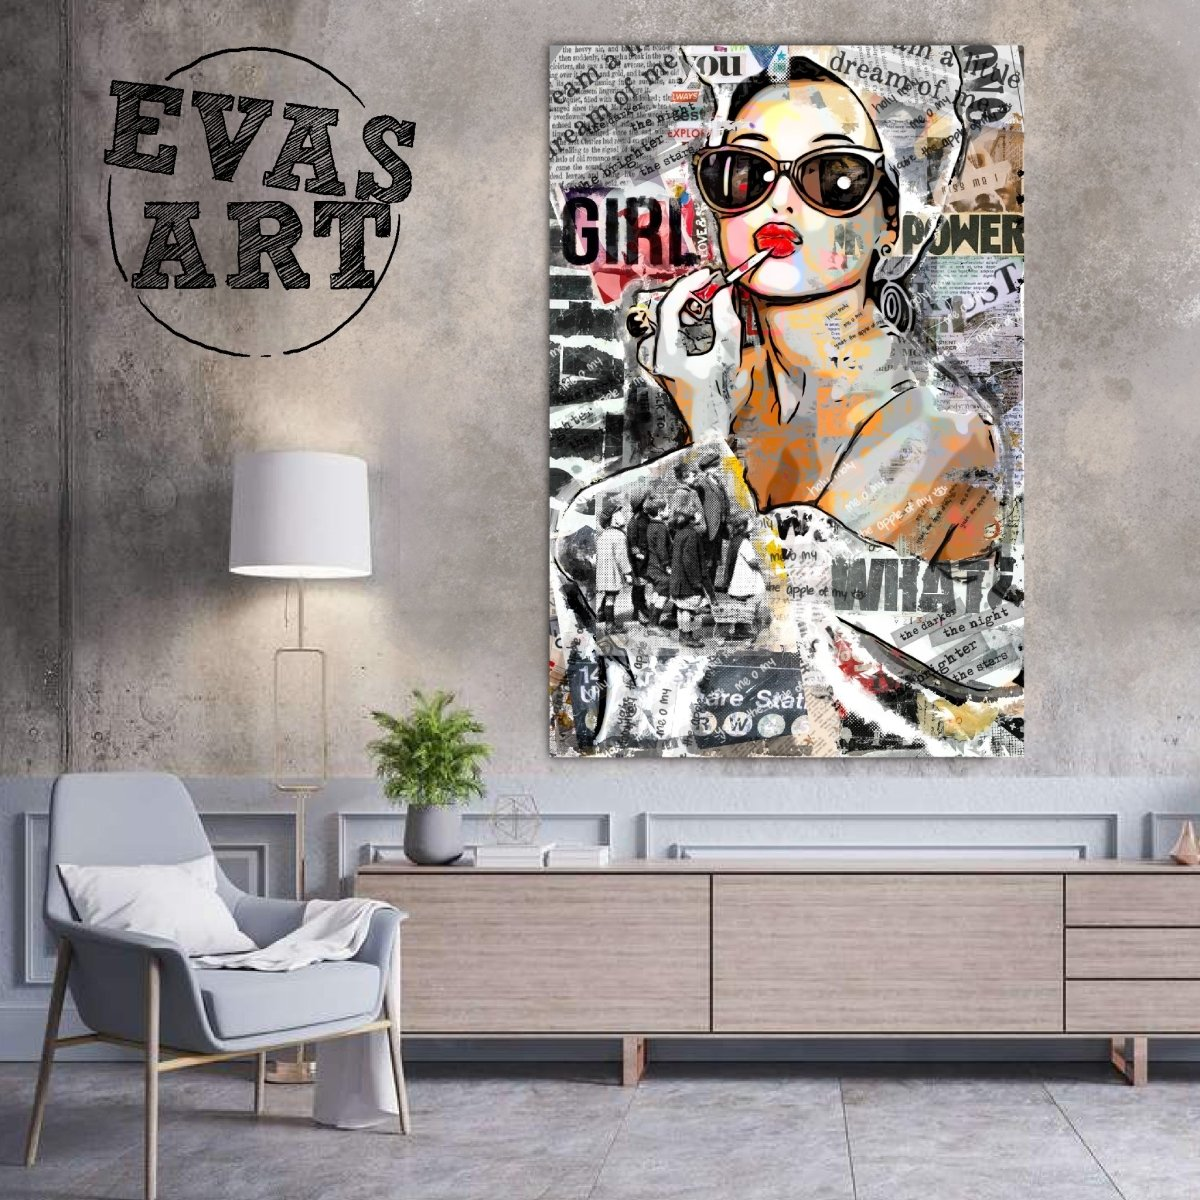 GIRL POWER - EVASART